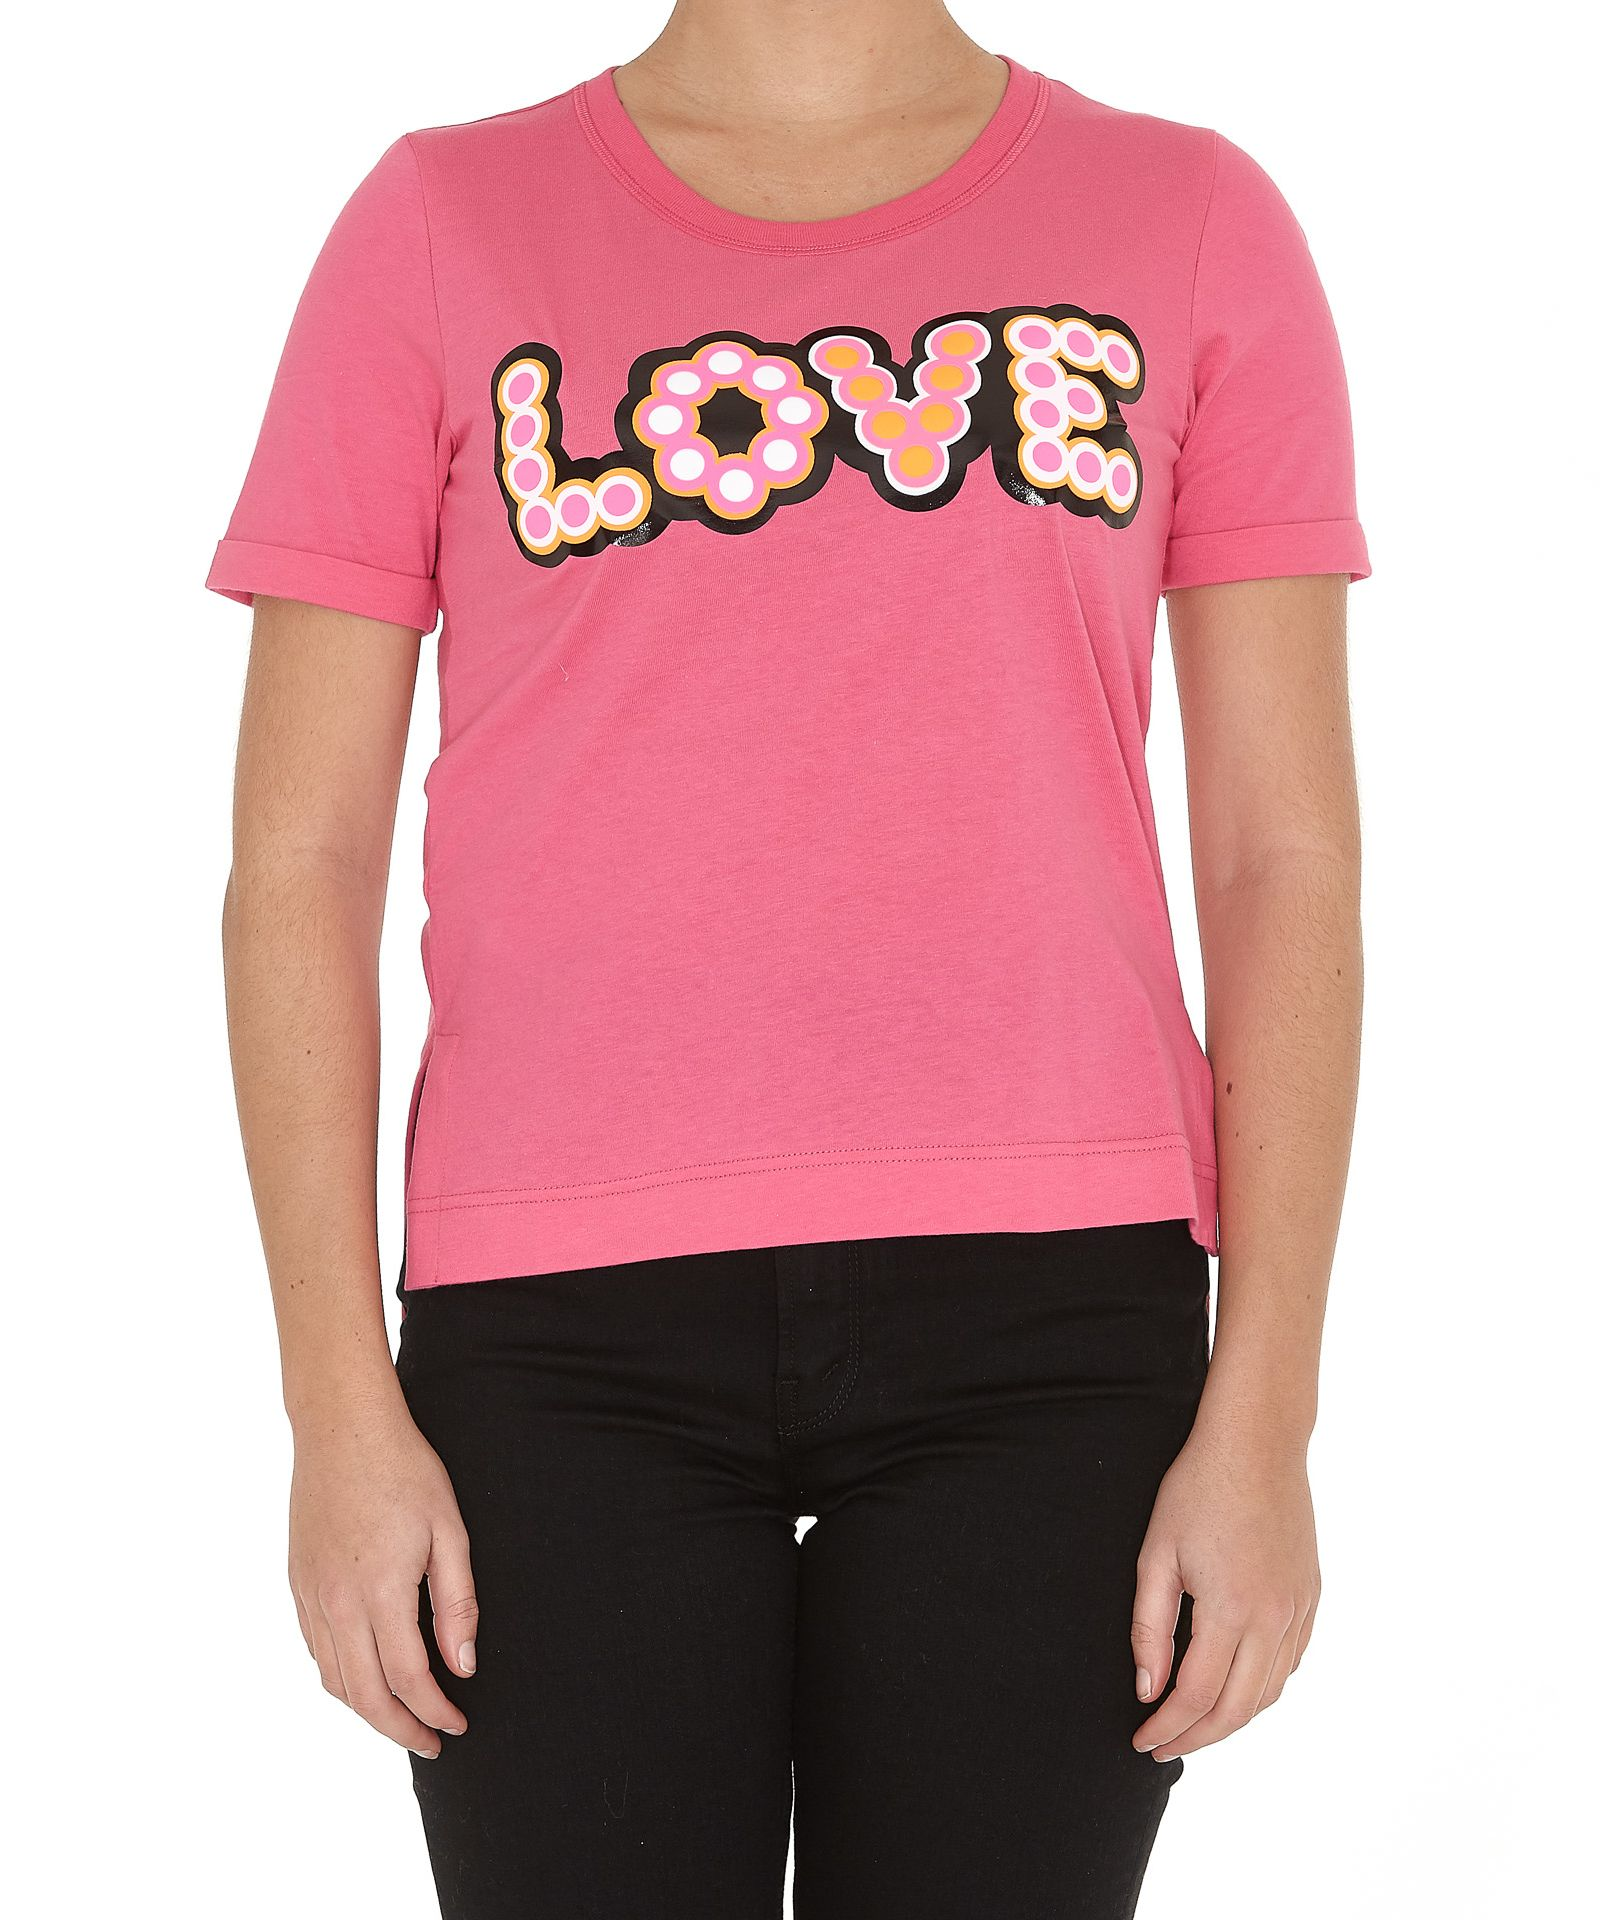 TOPWEAR - T-shirts Glamorous Clearance The Cheapest How Much Cheap High Quality Really Cheap Online Discounts Cheap Price ZfBhi2H9Yy